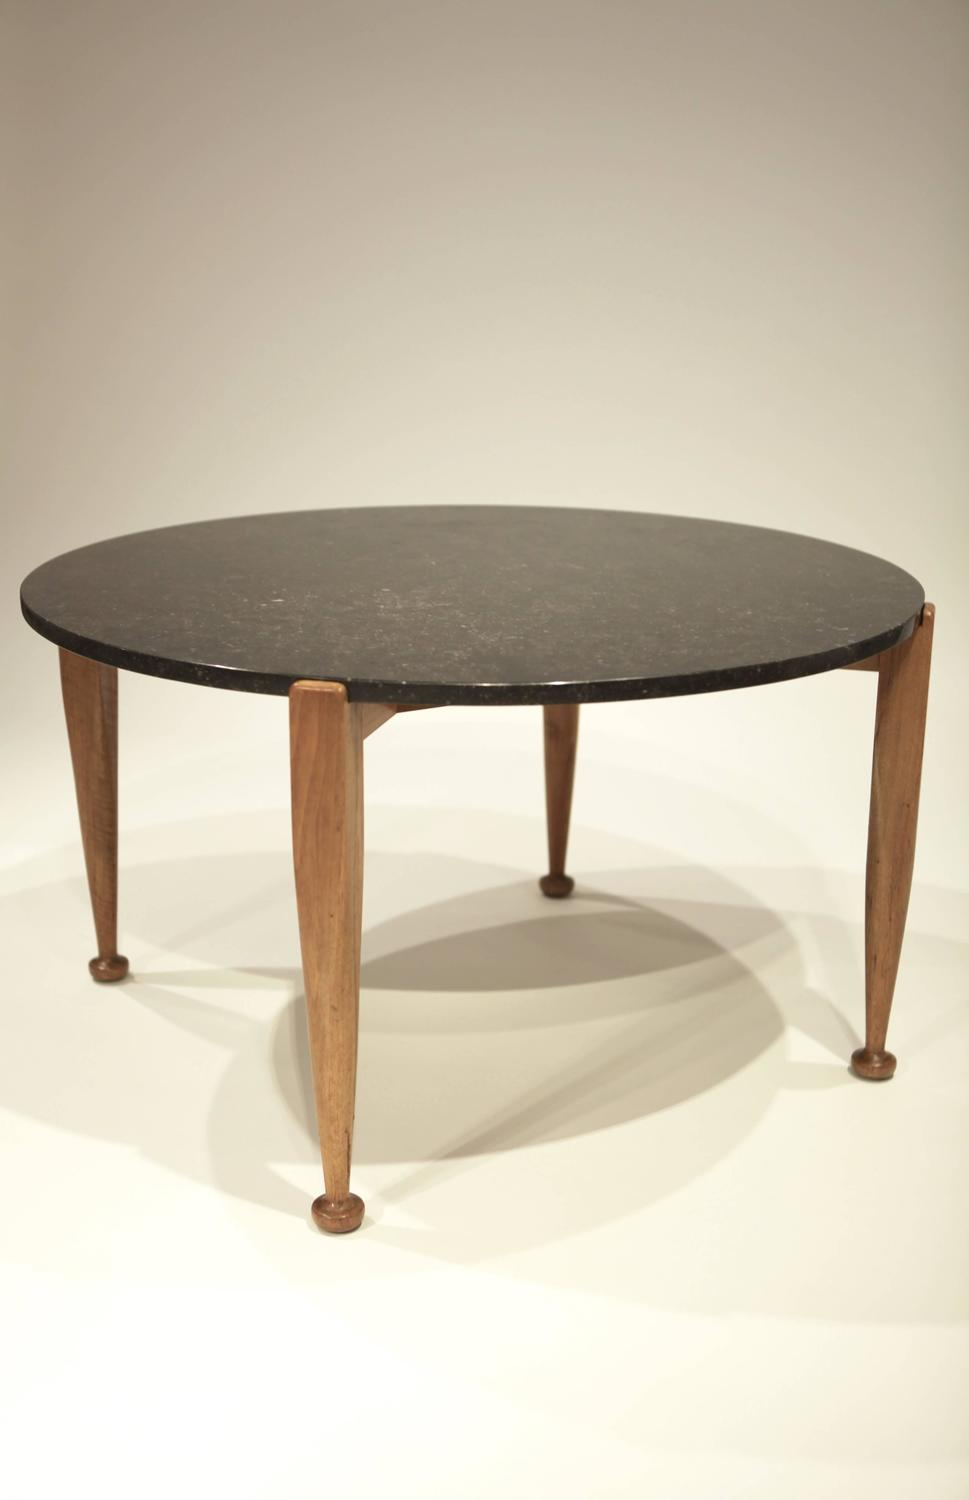 Josef frank coffee table in black marble and walnut 1950 for Marble and walnut coffee table